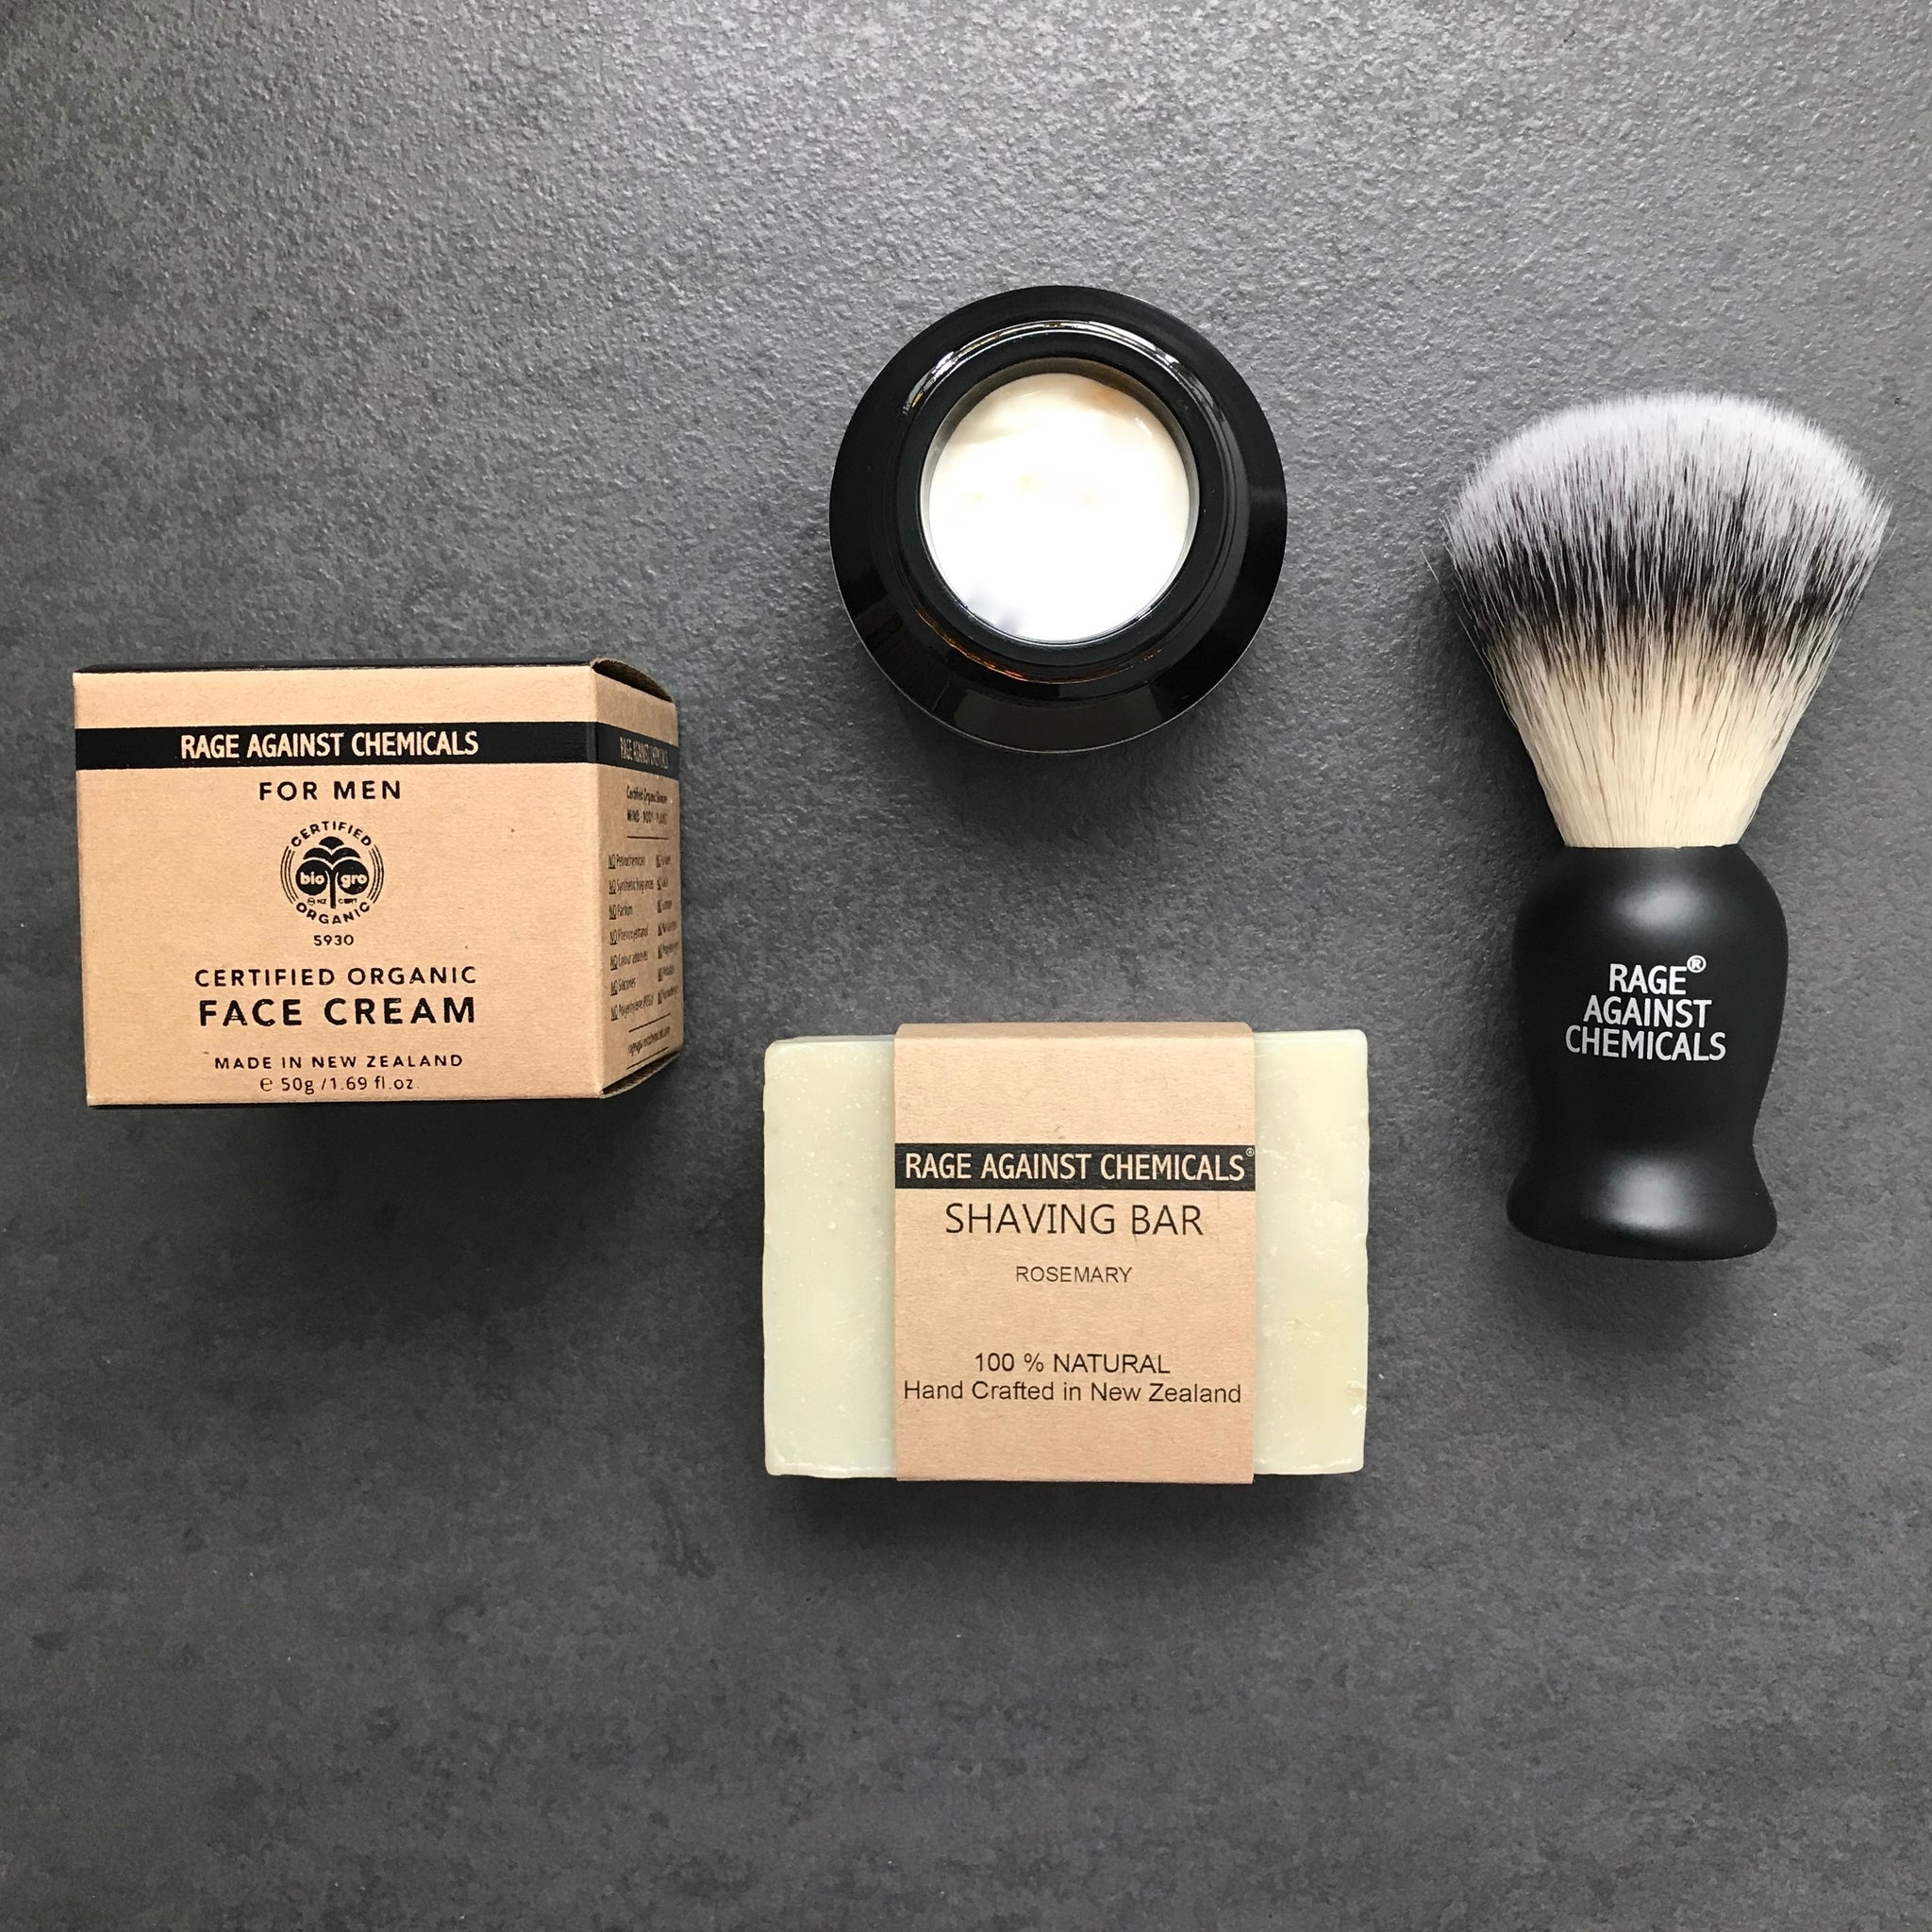 Shaving Brush, Bar & Face Cream  Gift Set  - Rage Against Chemicals - Certified Organic Skincare